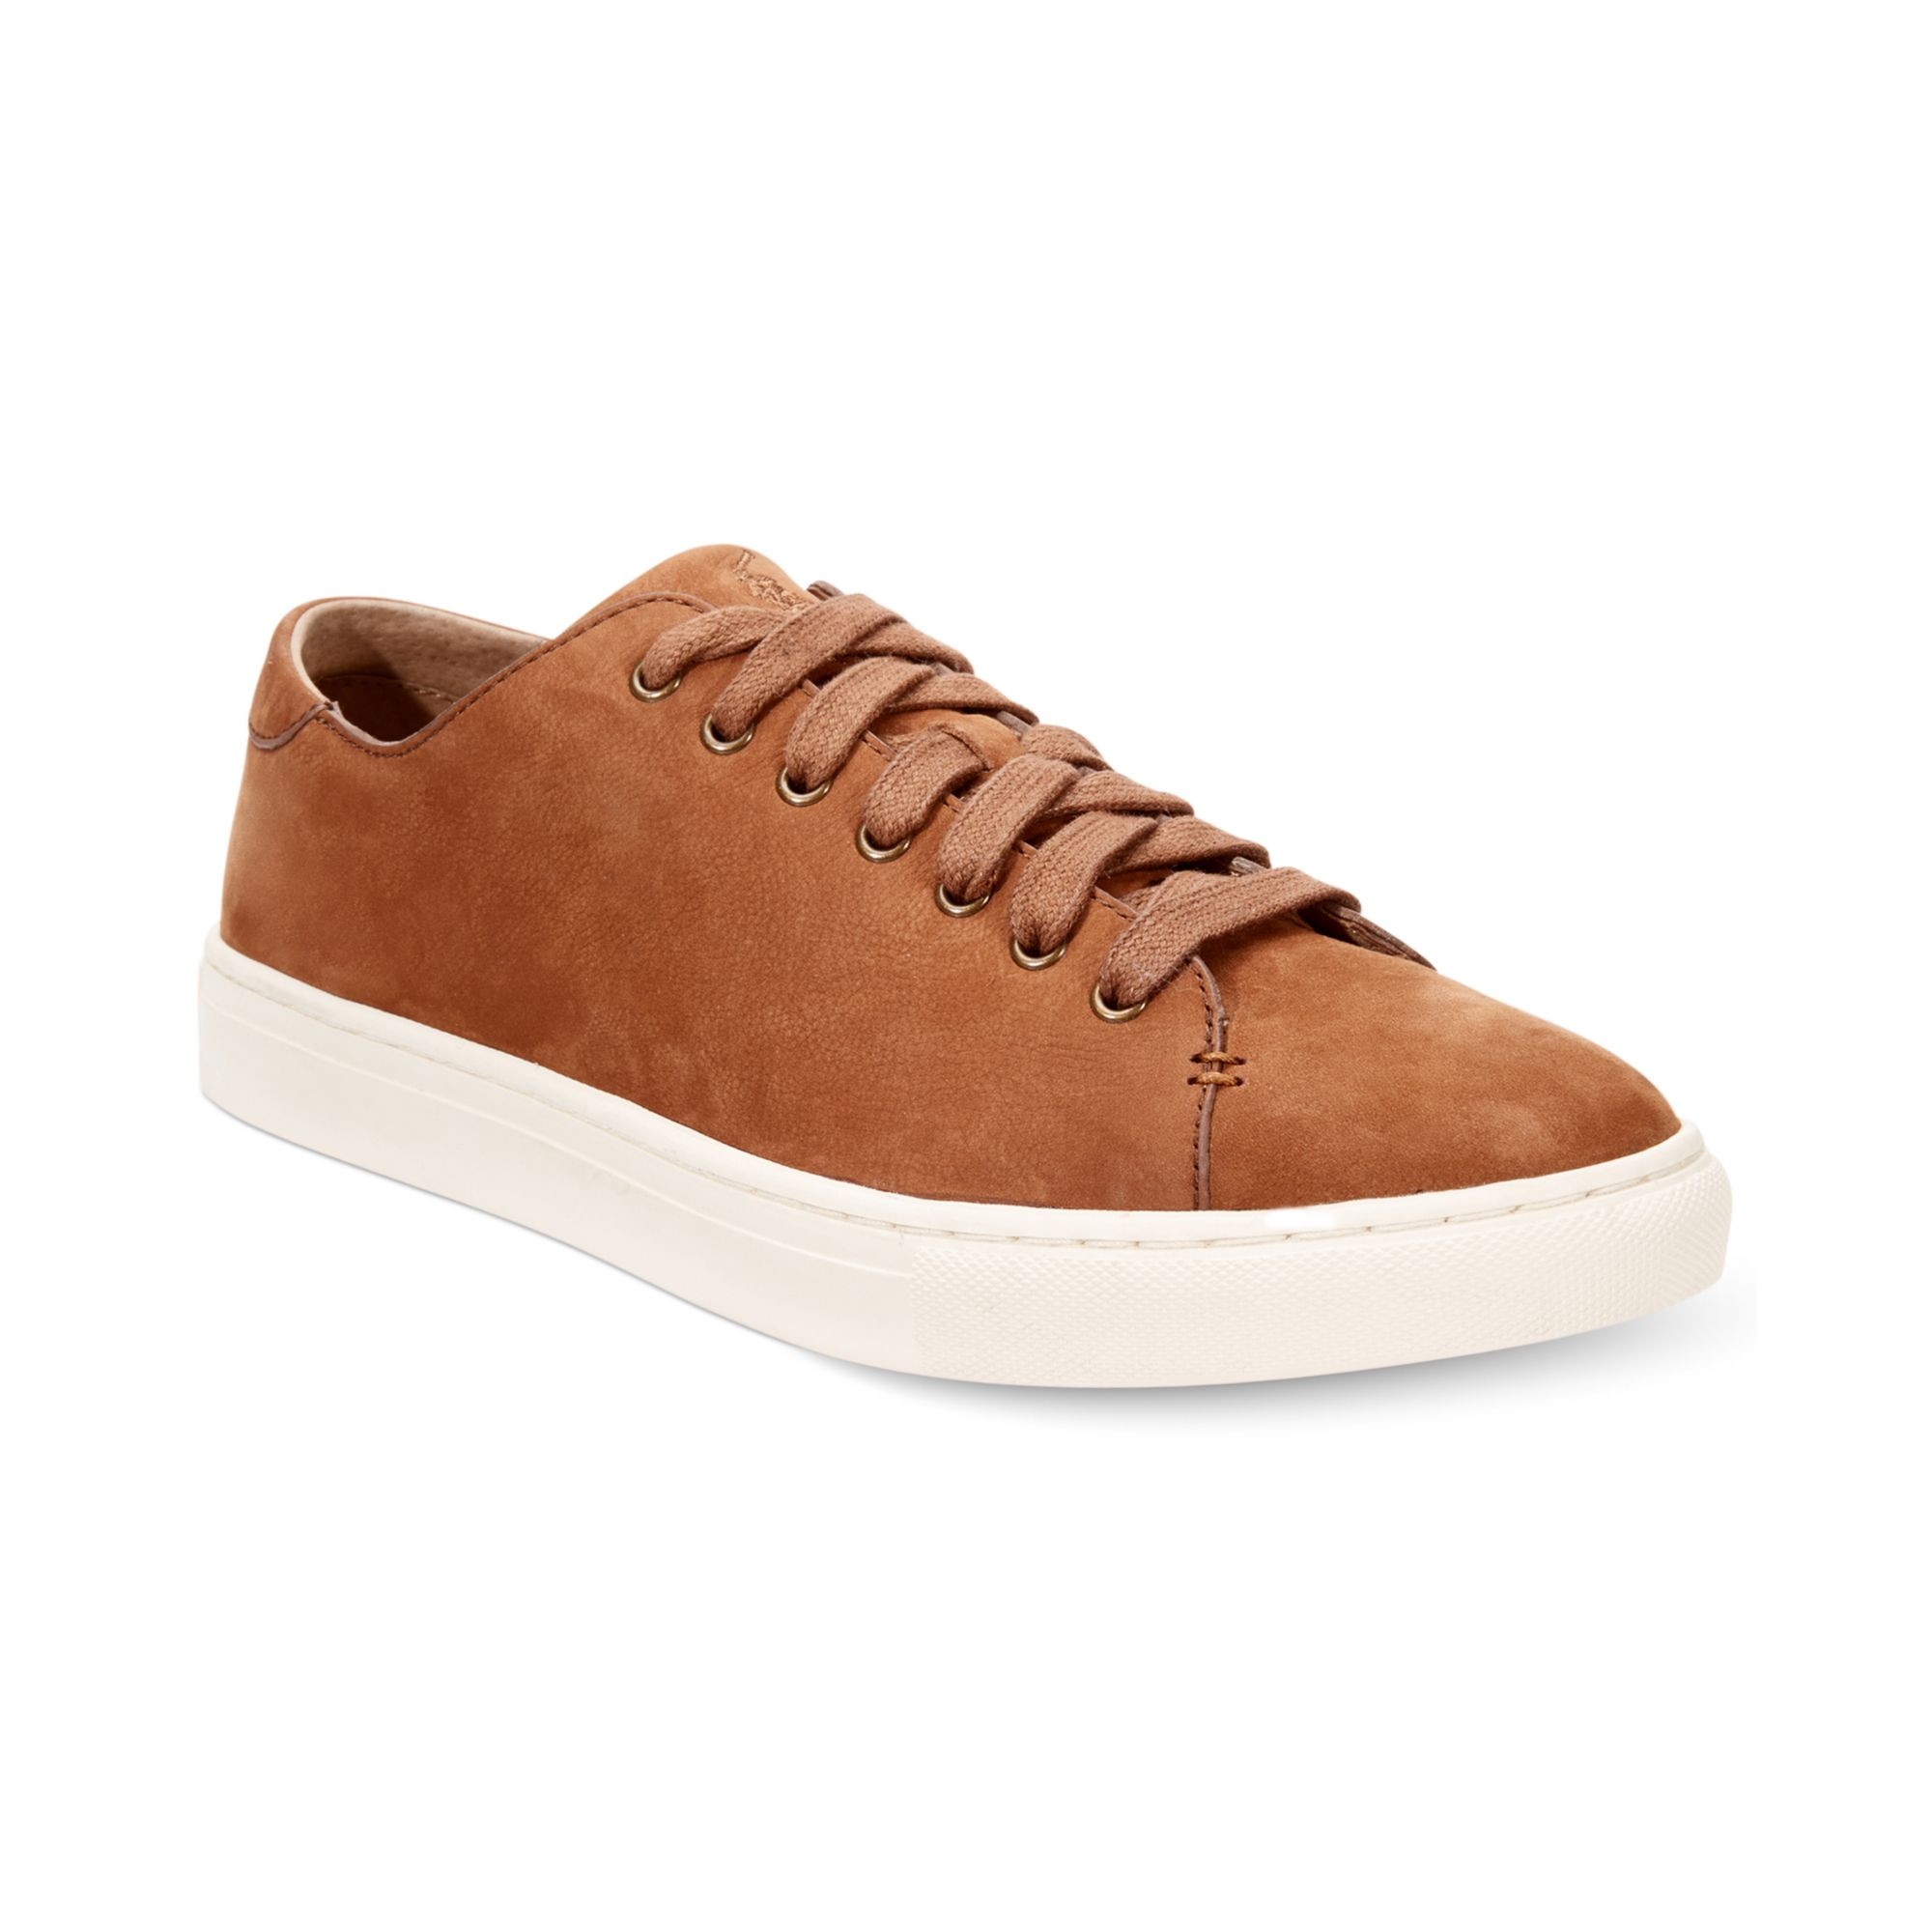 ralph lauren polo jermain suede sneakers in brown for men lyst. Black Bedroom Furniture Sets. Home Design Ideas